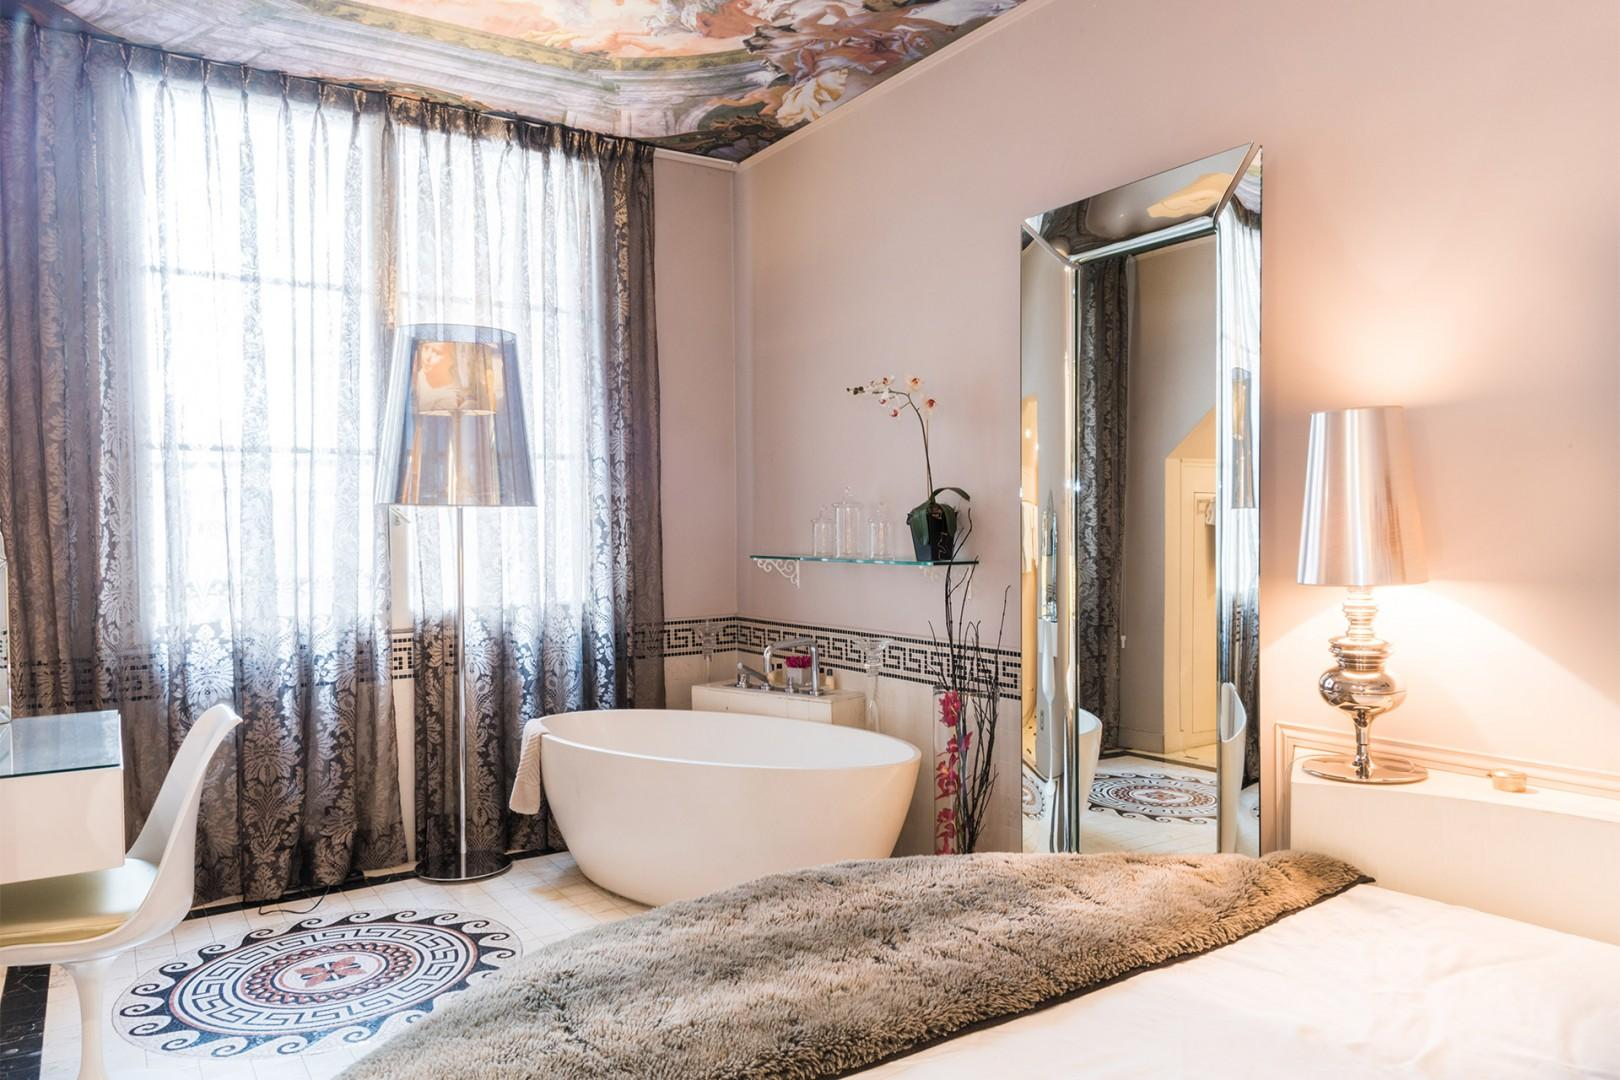 The bedroom is an oasis with a large soaking bathtub.